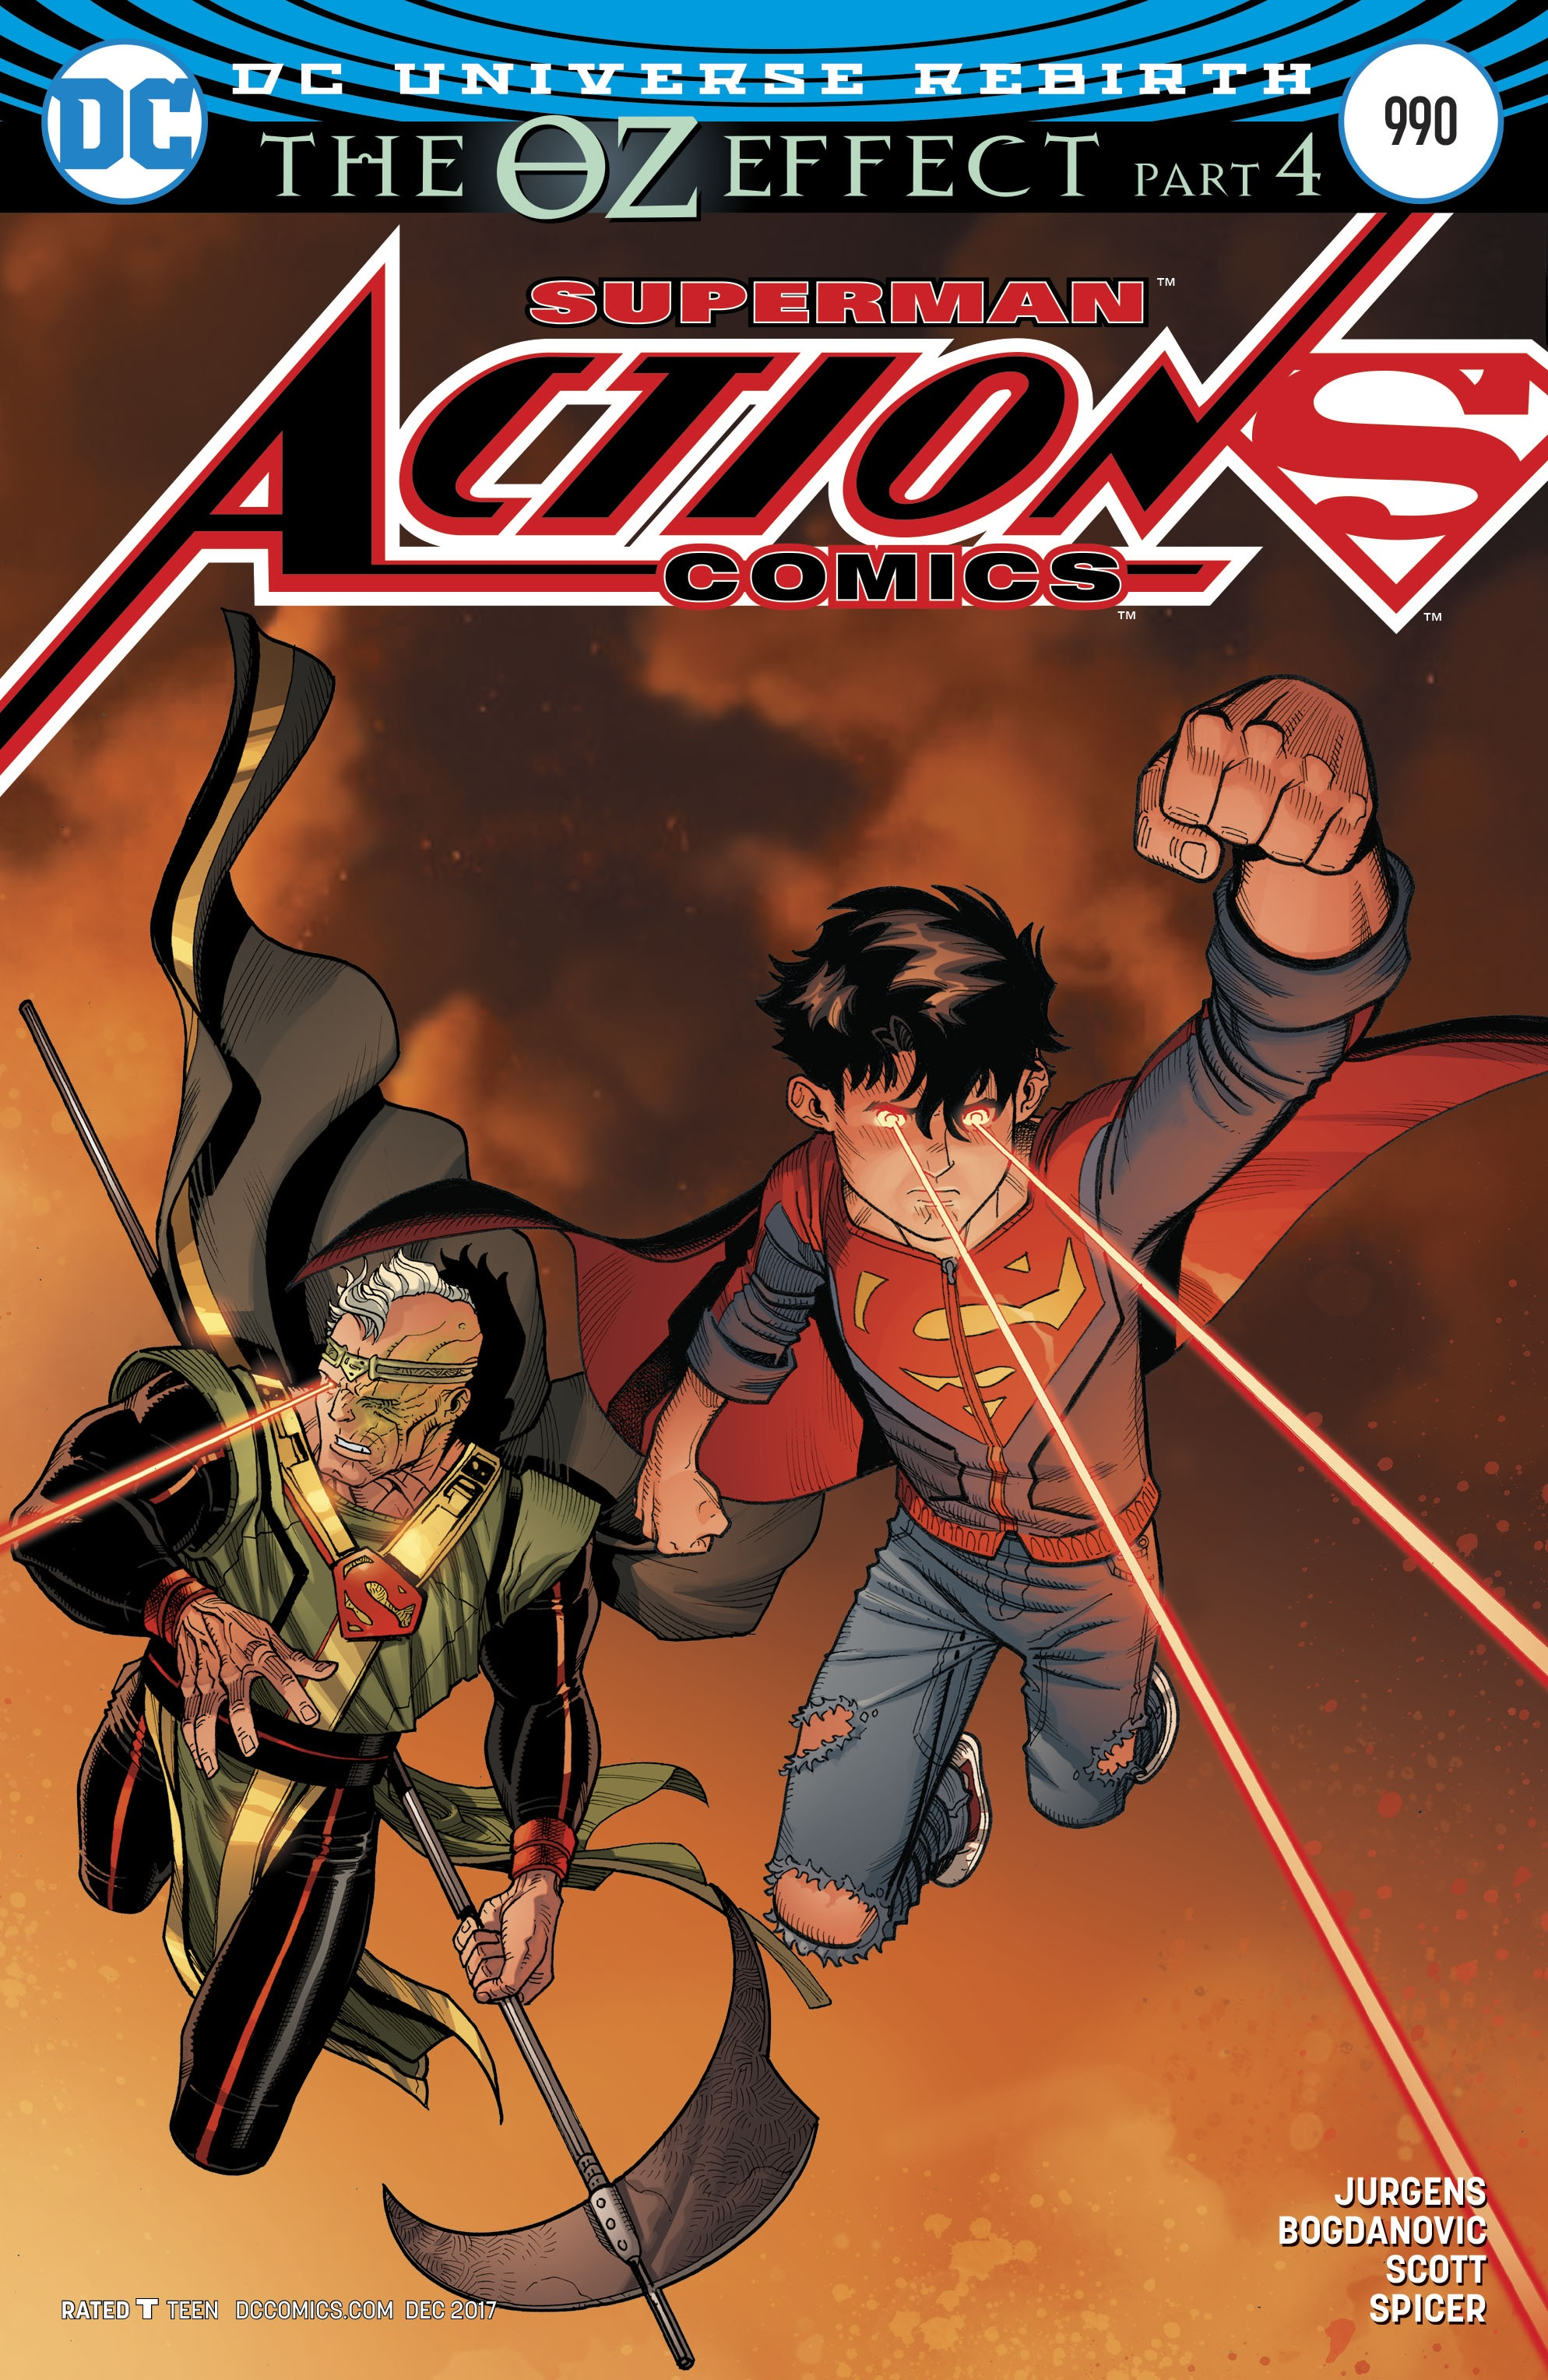 Action Comics Vol 1 990